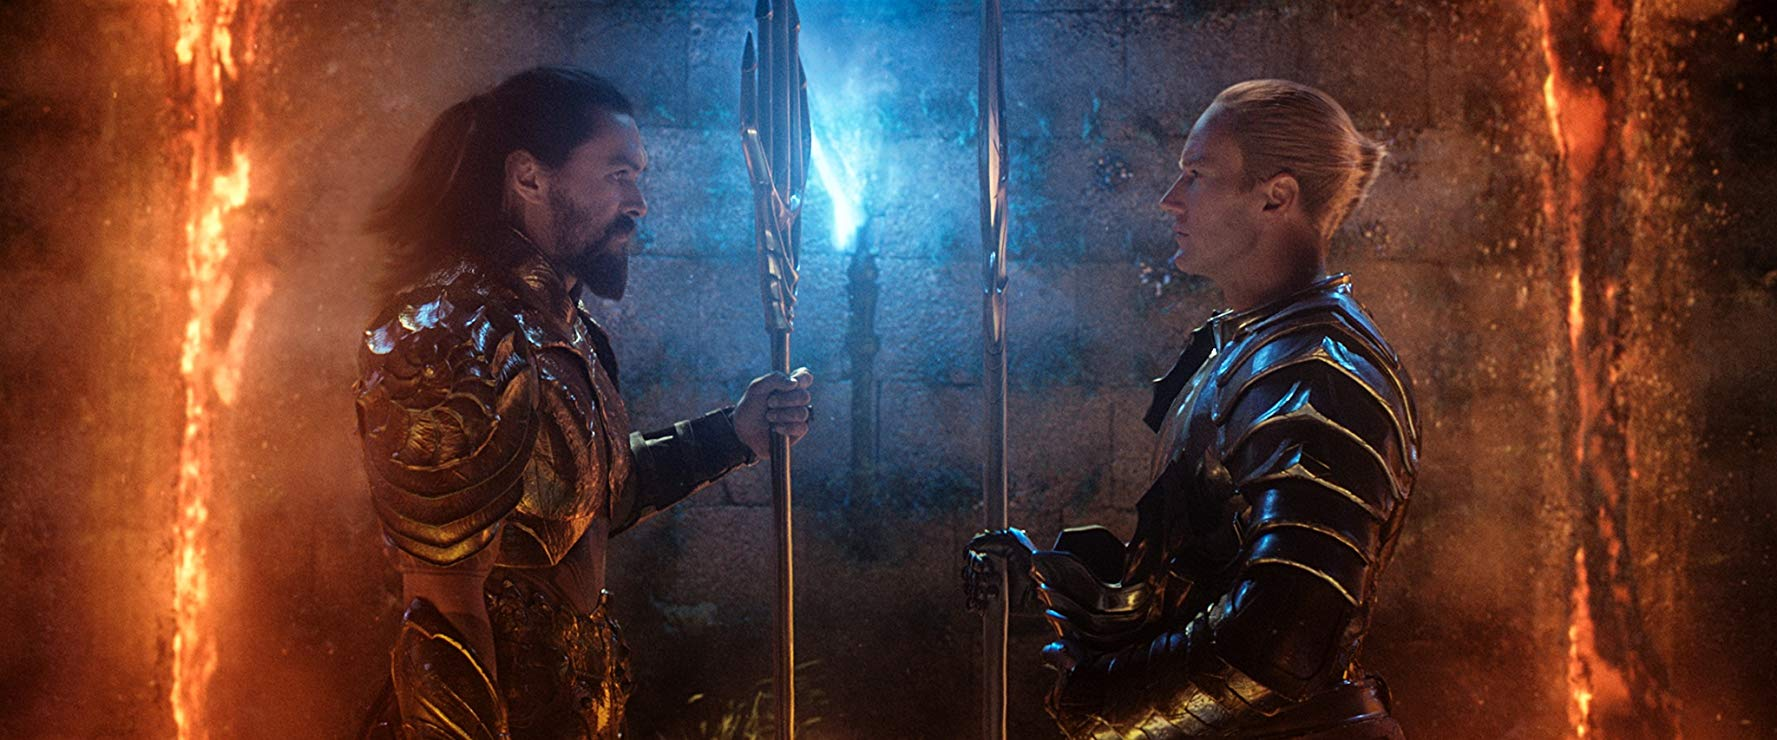 Jason Momoa (Aquaman) stands off with his brother, Orm (Patrick Wilson) [Warner Bros]